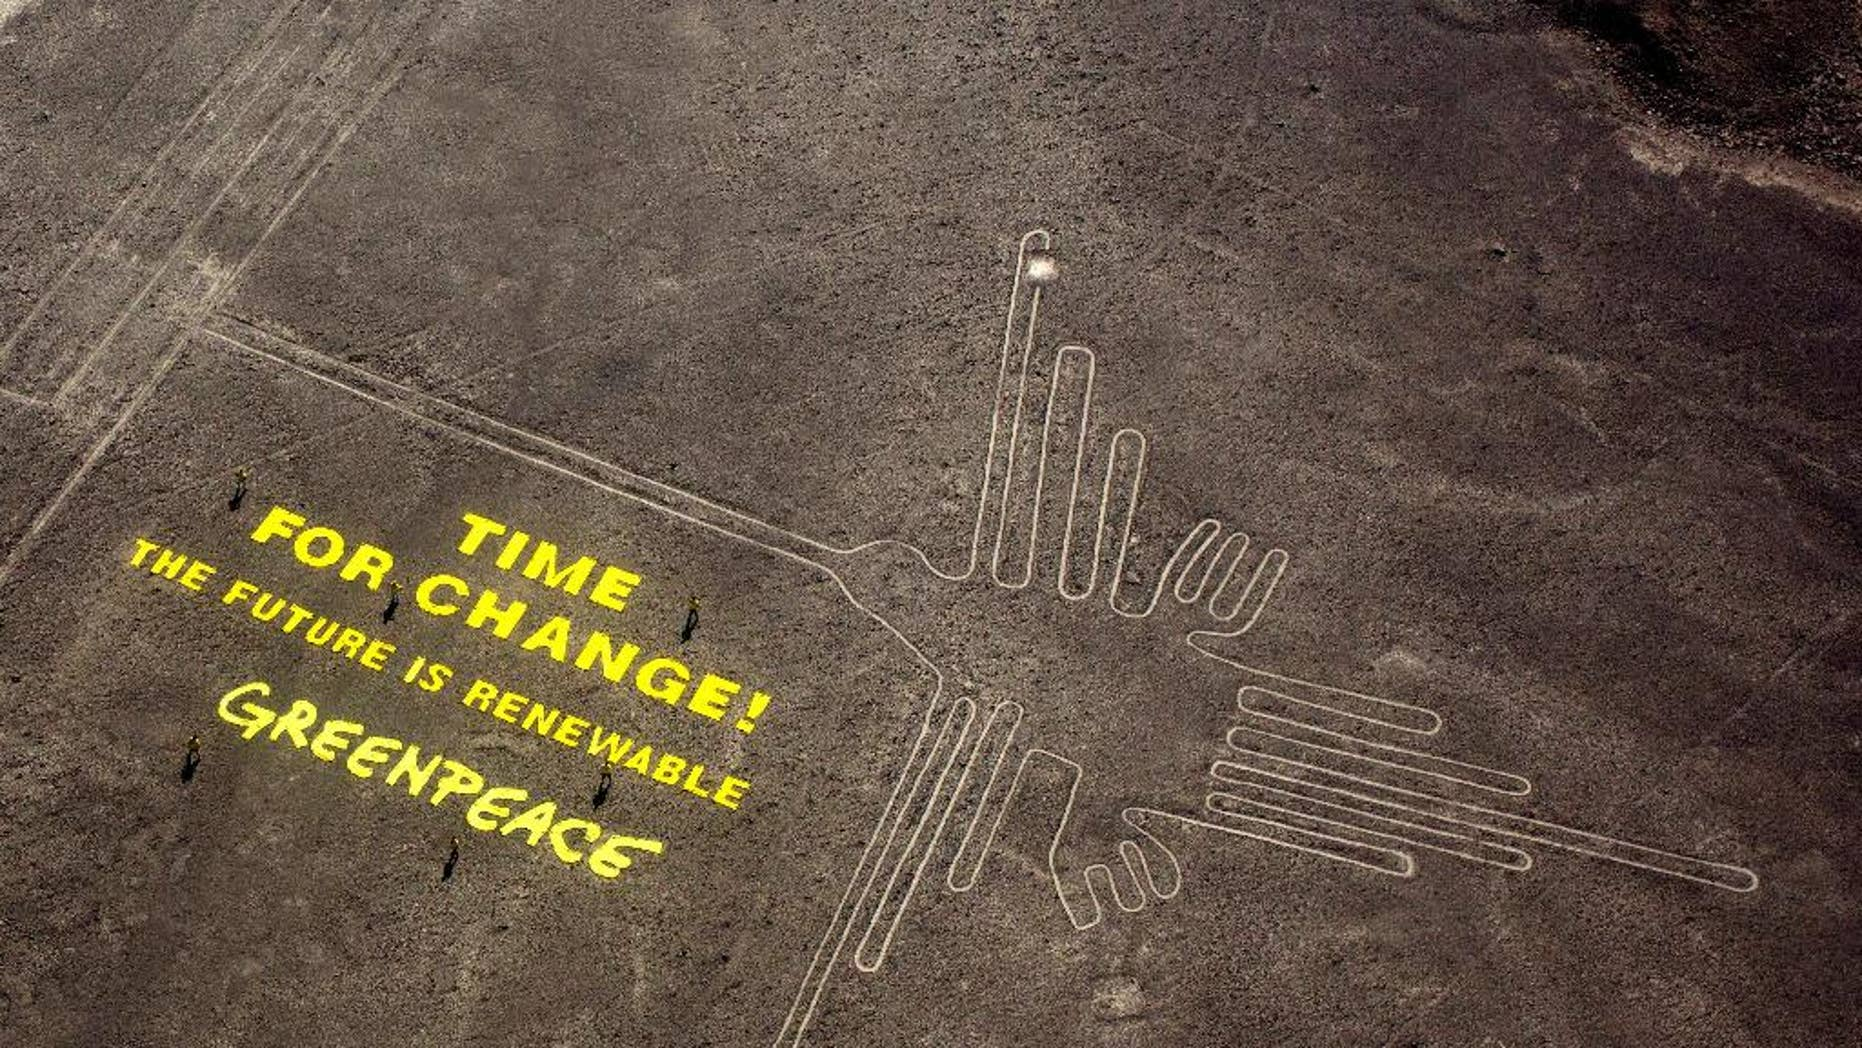 """FILE - In this Dec. 8, 2014 file photo, Greenpeace activists stand next to large letters that spell out """"Time for Change: The Future is Renewable"""" next to the hummingbird geoglyph in Nazca, Peru. A Peruvian prosecutor is investigating the suspected involvement of Greenpeace activist Mauro Fernandez in the publicity stunt that allegedly damaged the world-renowned Nazca lines that date to some 1,500 to 2,000 years ago. Authorities have said the fragile site was damaged by footprints. (AP Photo/Rodrigo Abd, File)"""